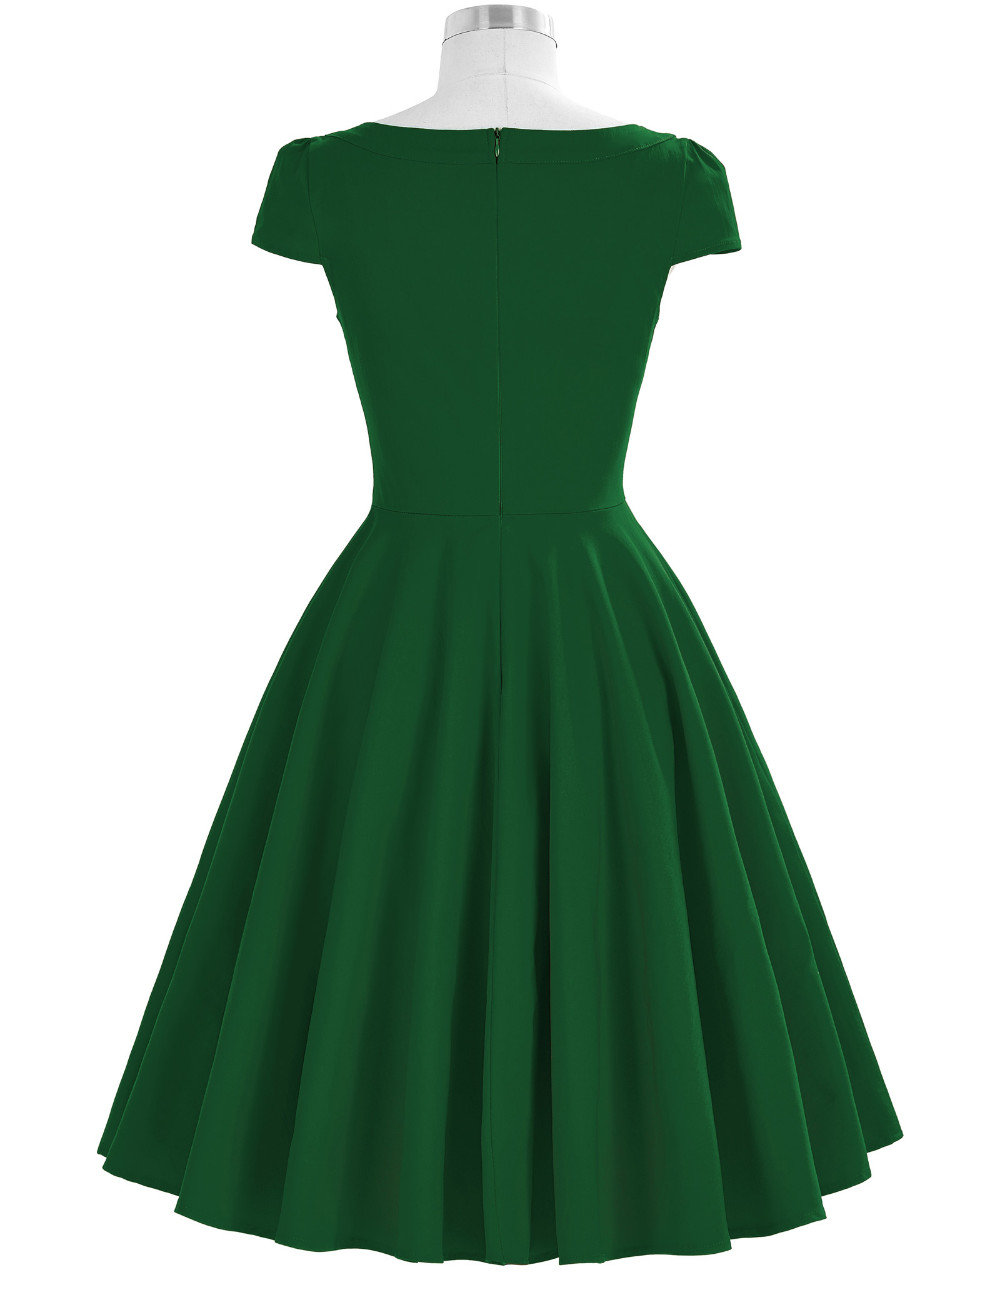 dropshipping service Belle Poque Dark Green Cap Sleeve Hollowed Front Party Picnic Dress 50s Retro Vintage Dress BP000189-3